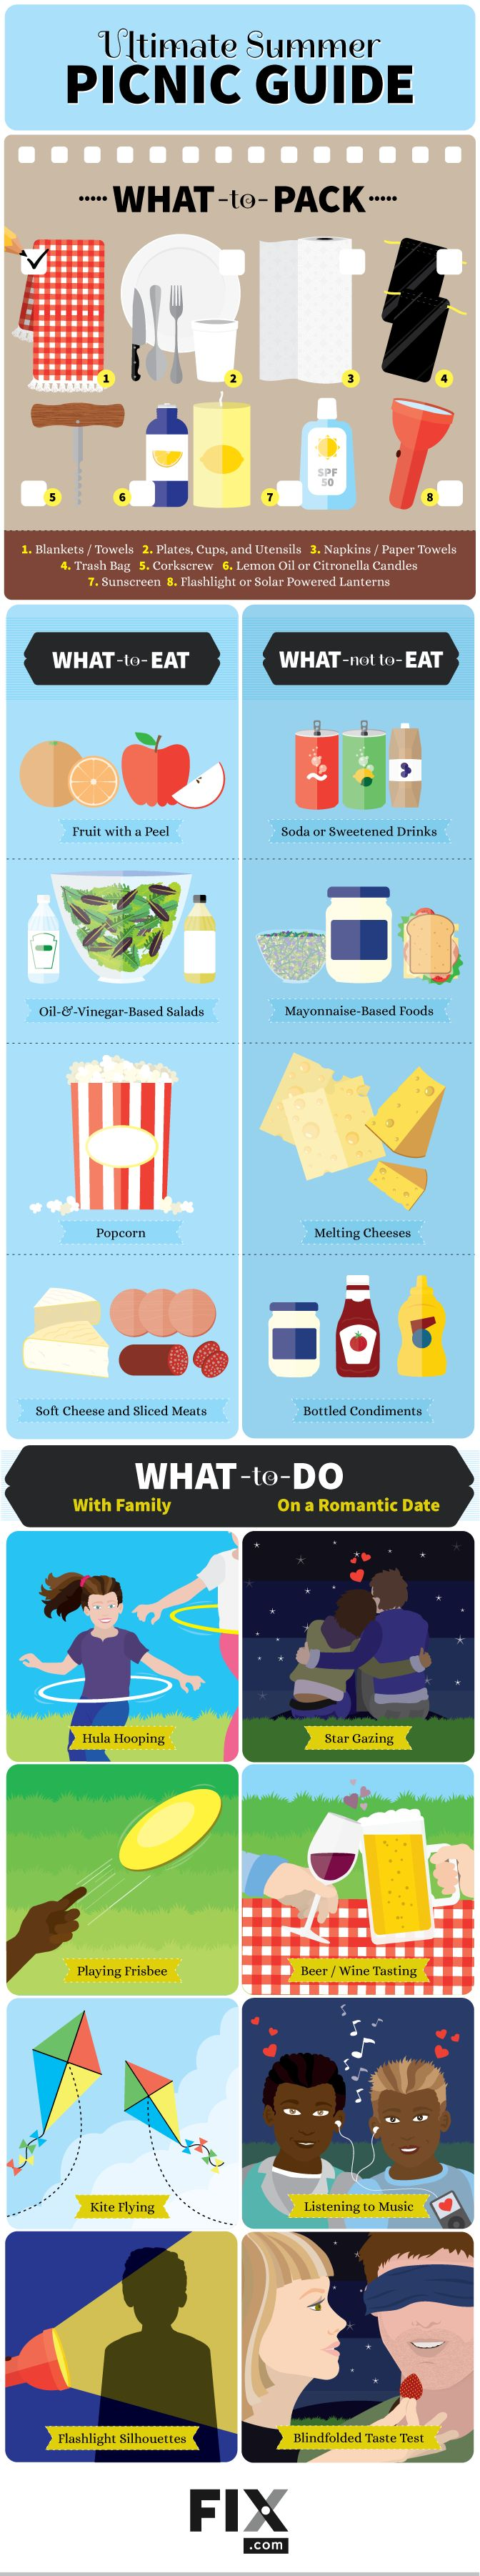 Picnics are a fun summer activity, with friends, family or that special someone! This guide will show you how to do it right :)